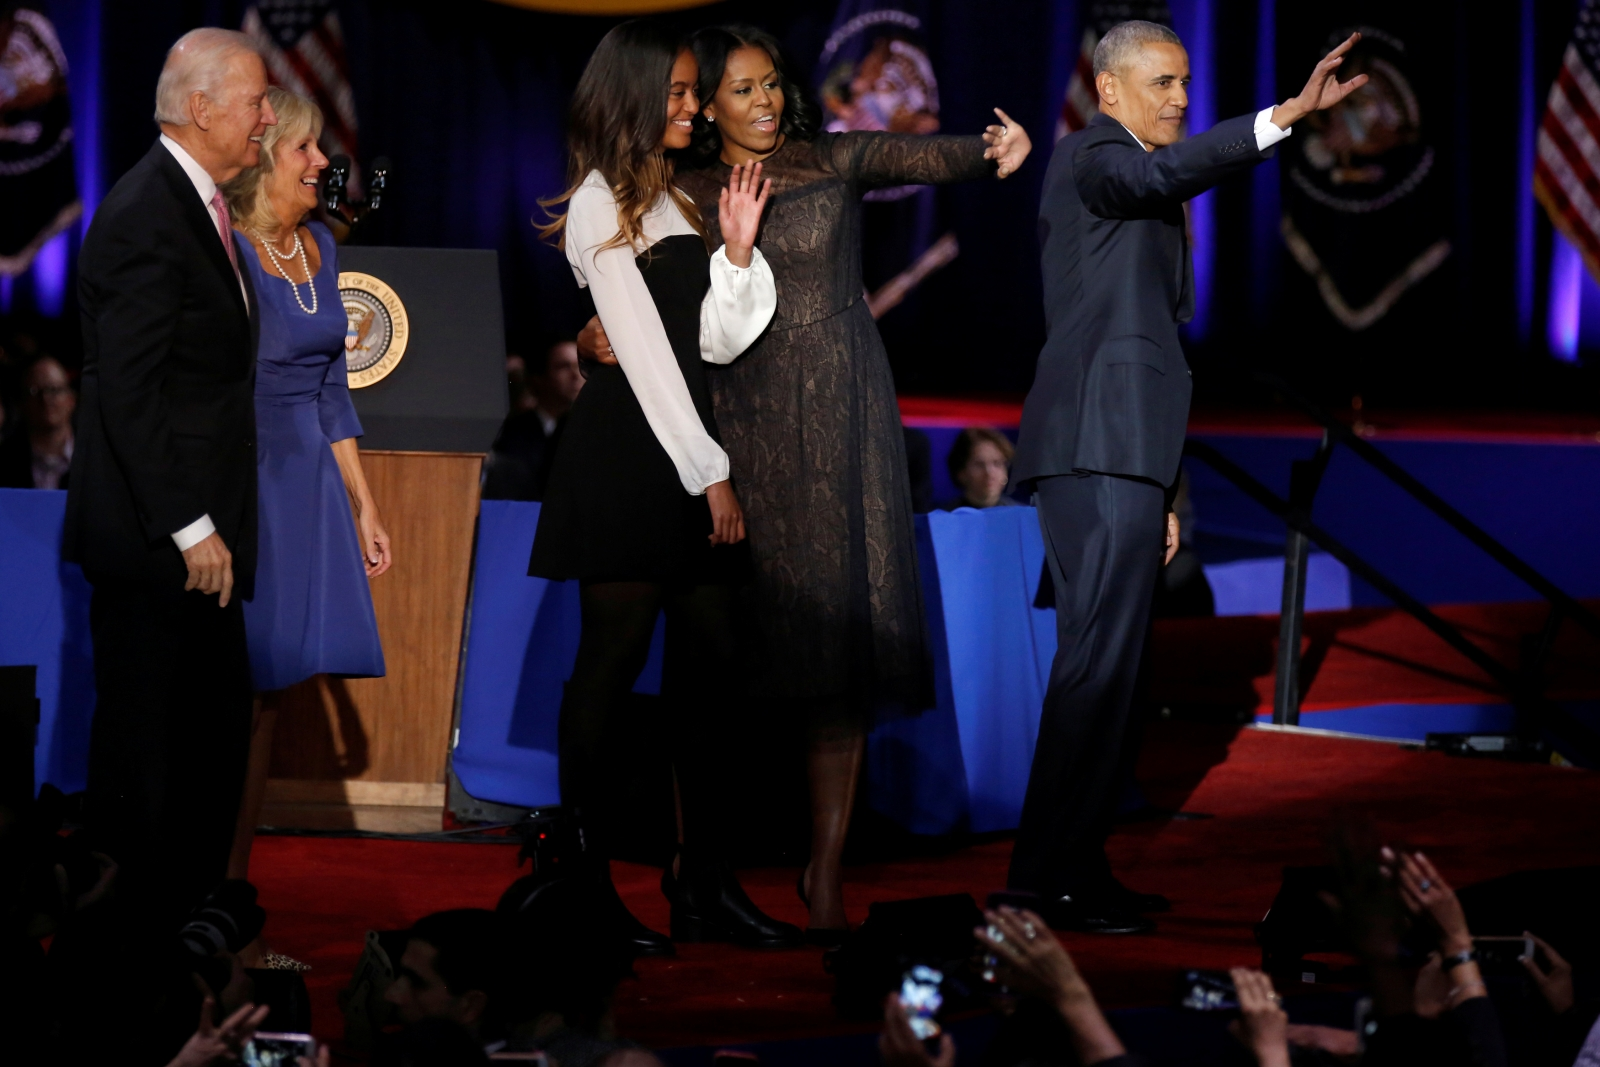 The Obama and Biden families wave farewell